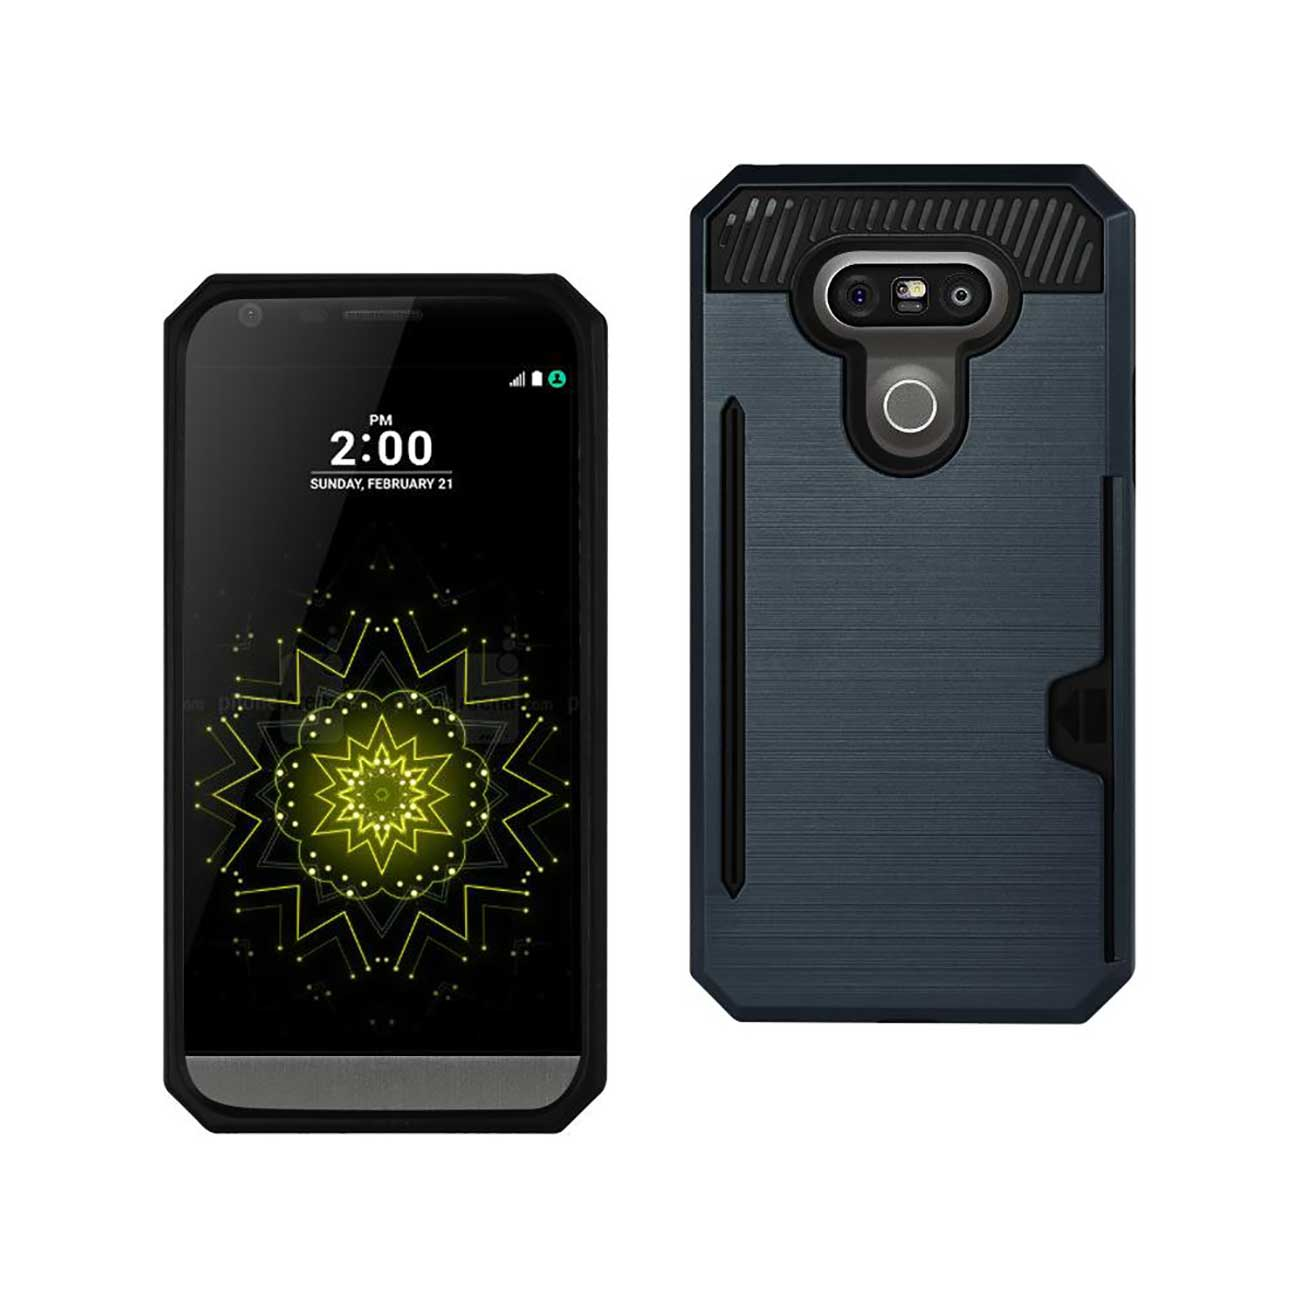 LG G5 SLIM ARMOR HYBRID CASE WITH CARD HOLDER IN NAVY